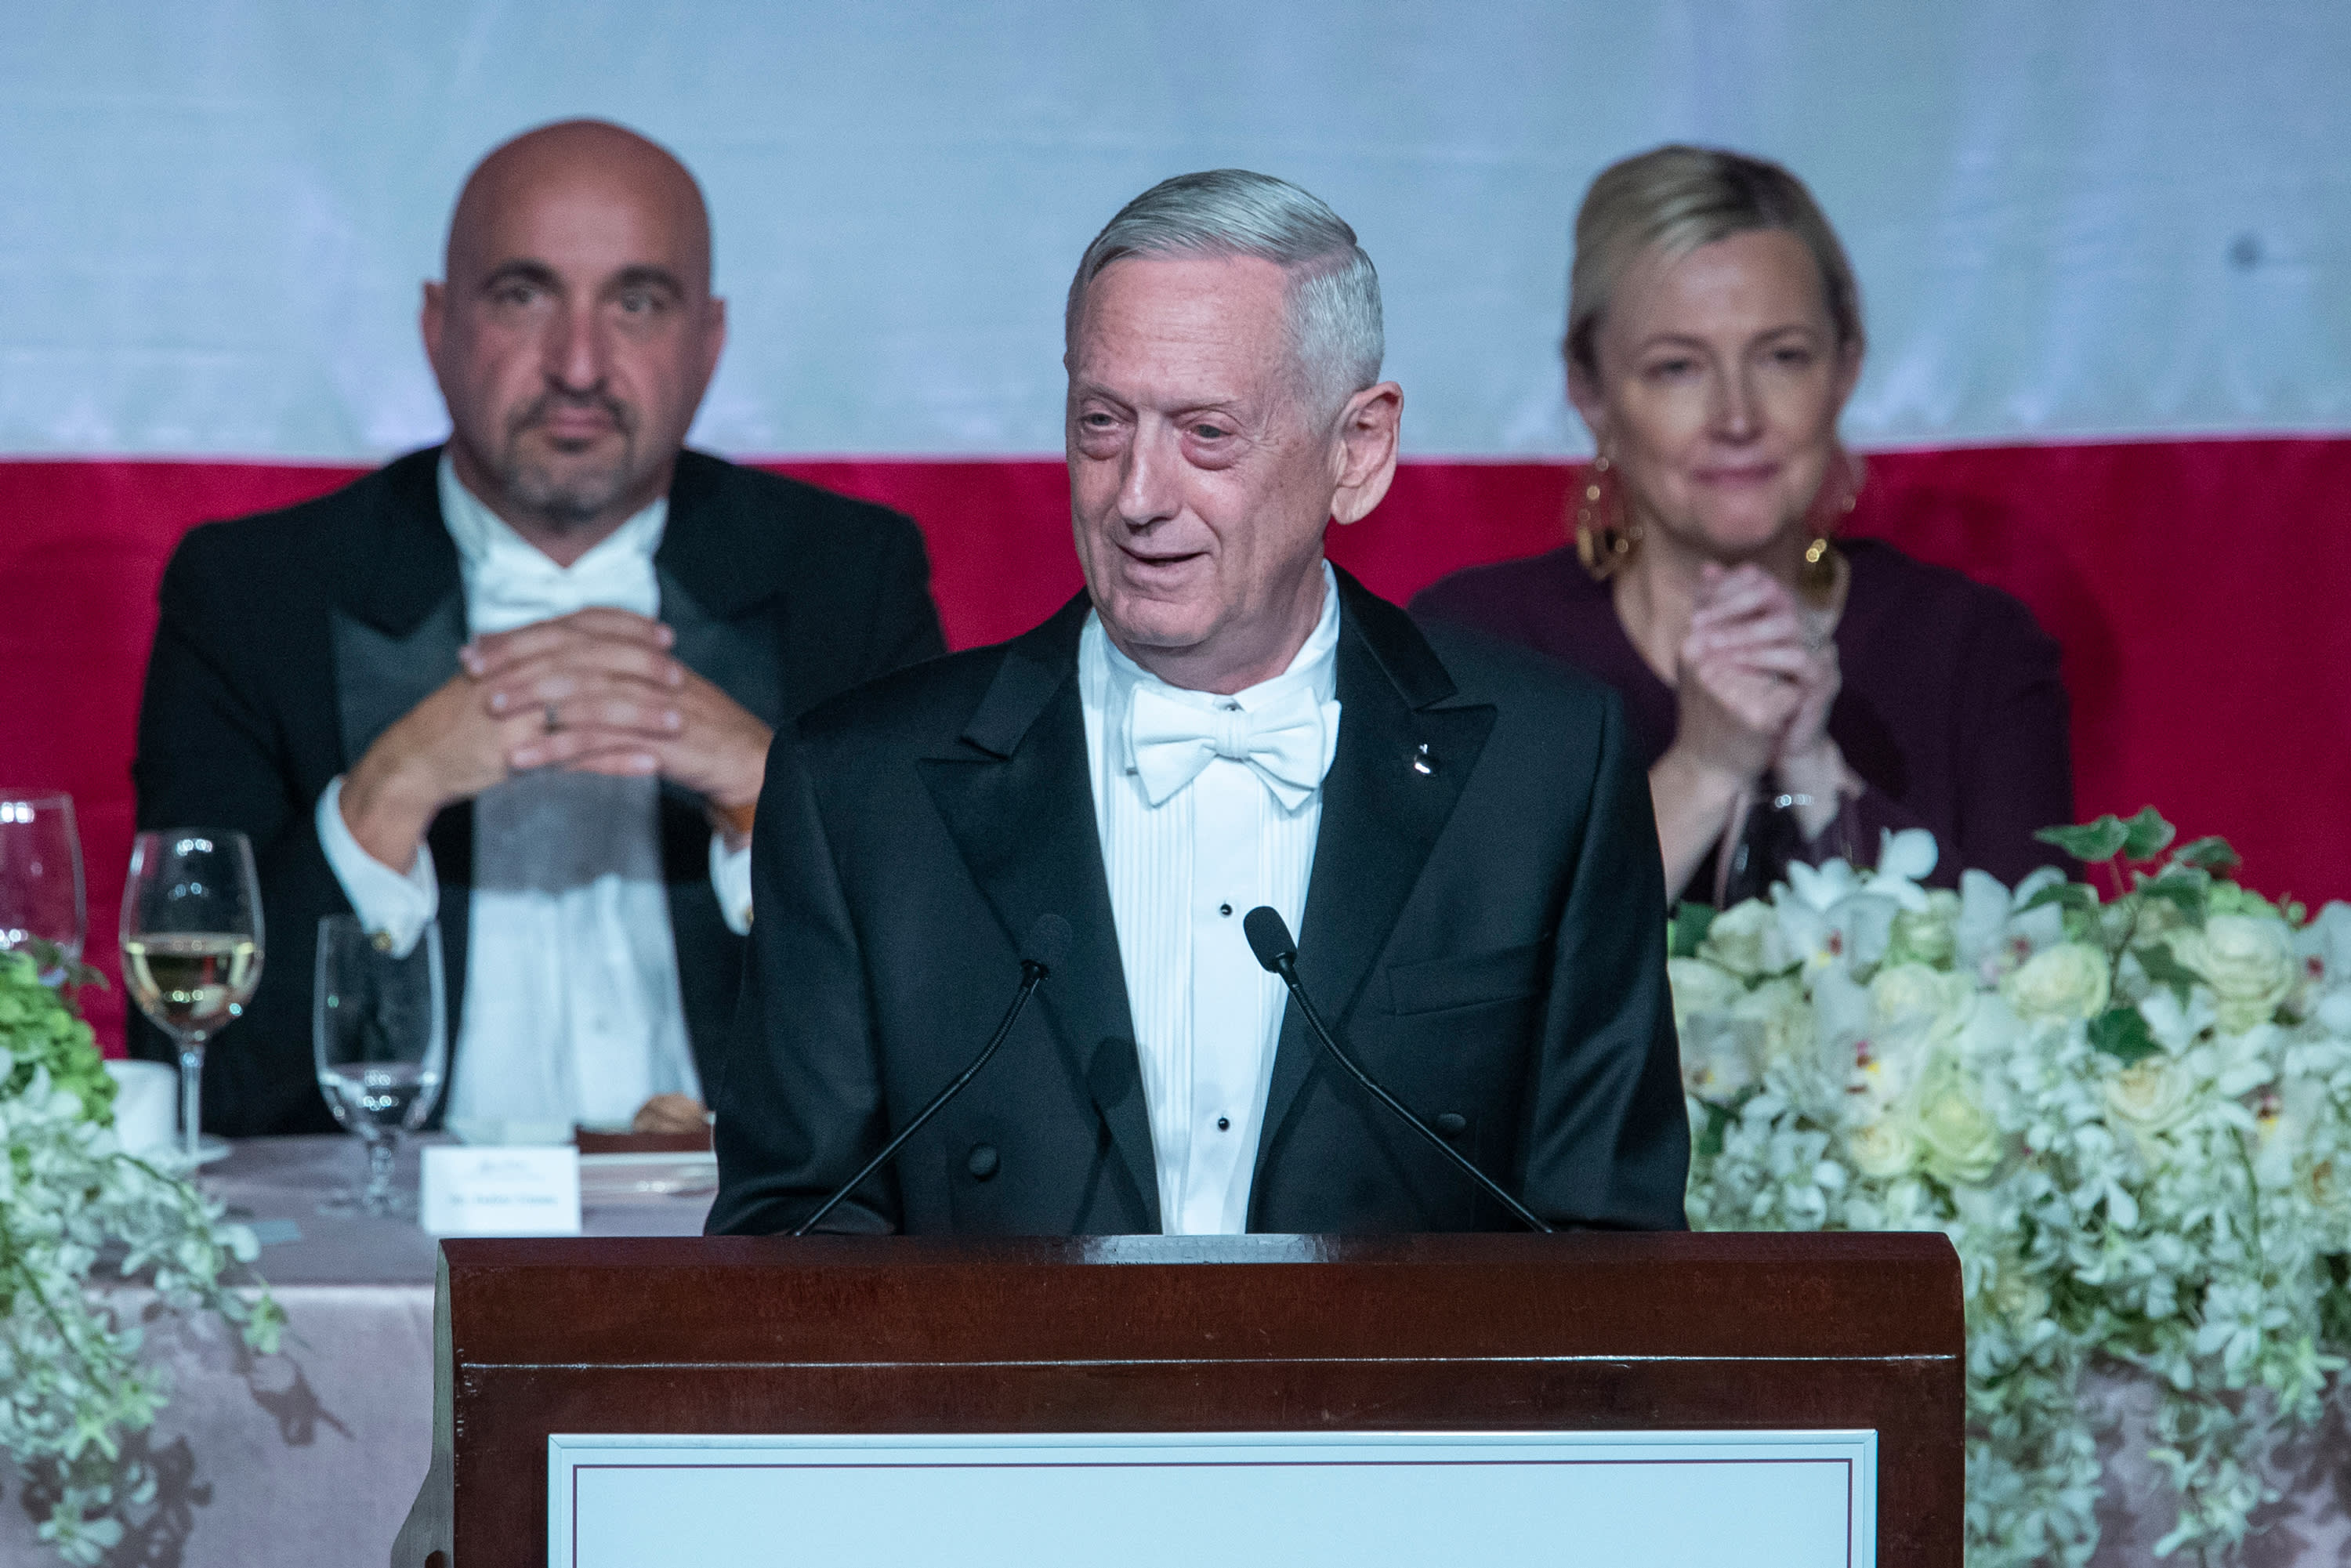 'Overrated general' Mattis zings Trump at a New York charity gala